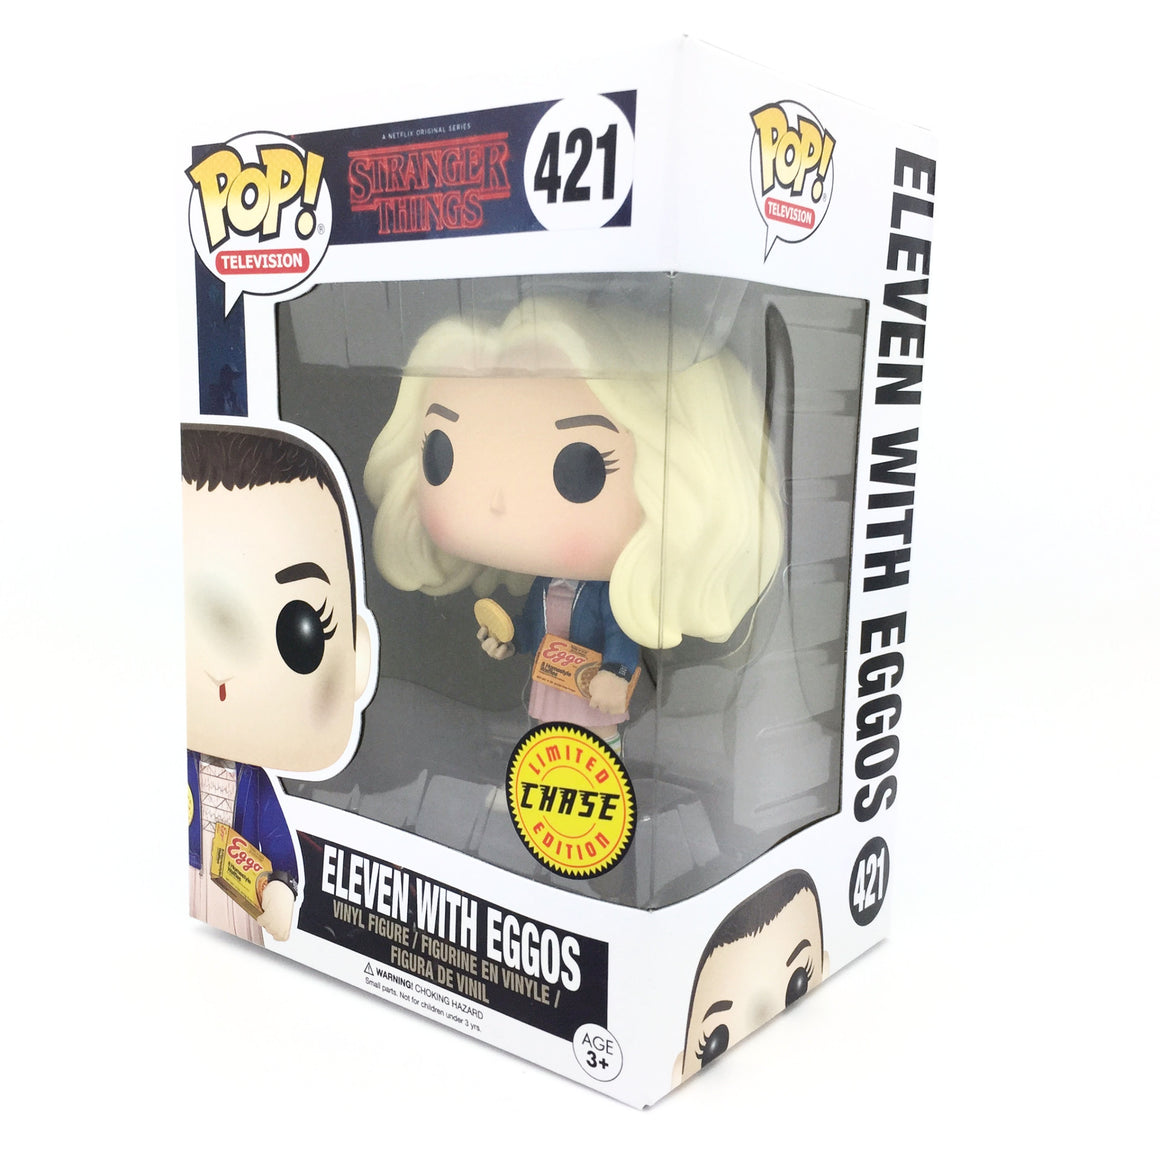 Stranger Things Eleven with Eggos Blonde Wig Limited Chase Edition POP Vinyl Figure by Funko